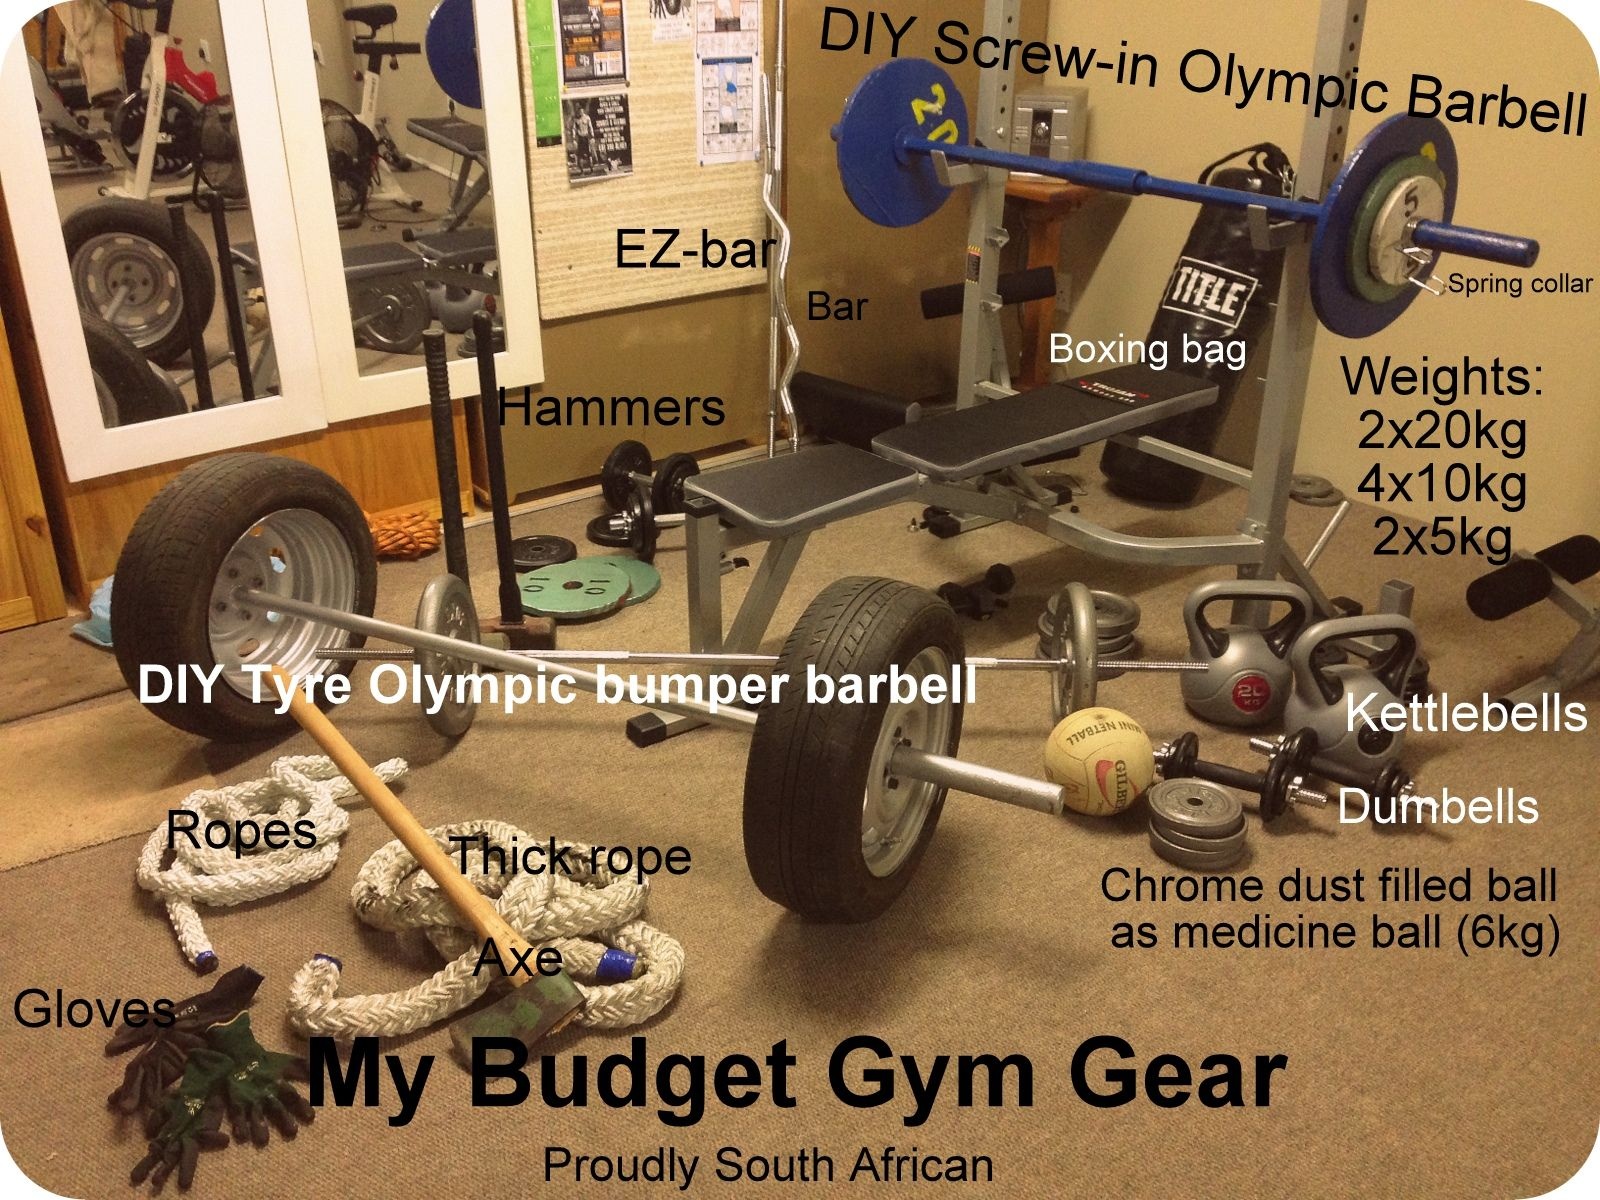 Diy home gym  My Home Gym on a budget. DIY Bumper barbell DIY compact screw-in ...